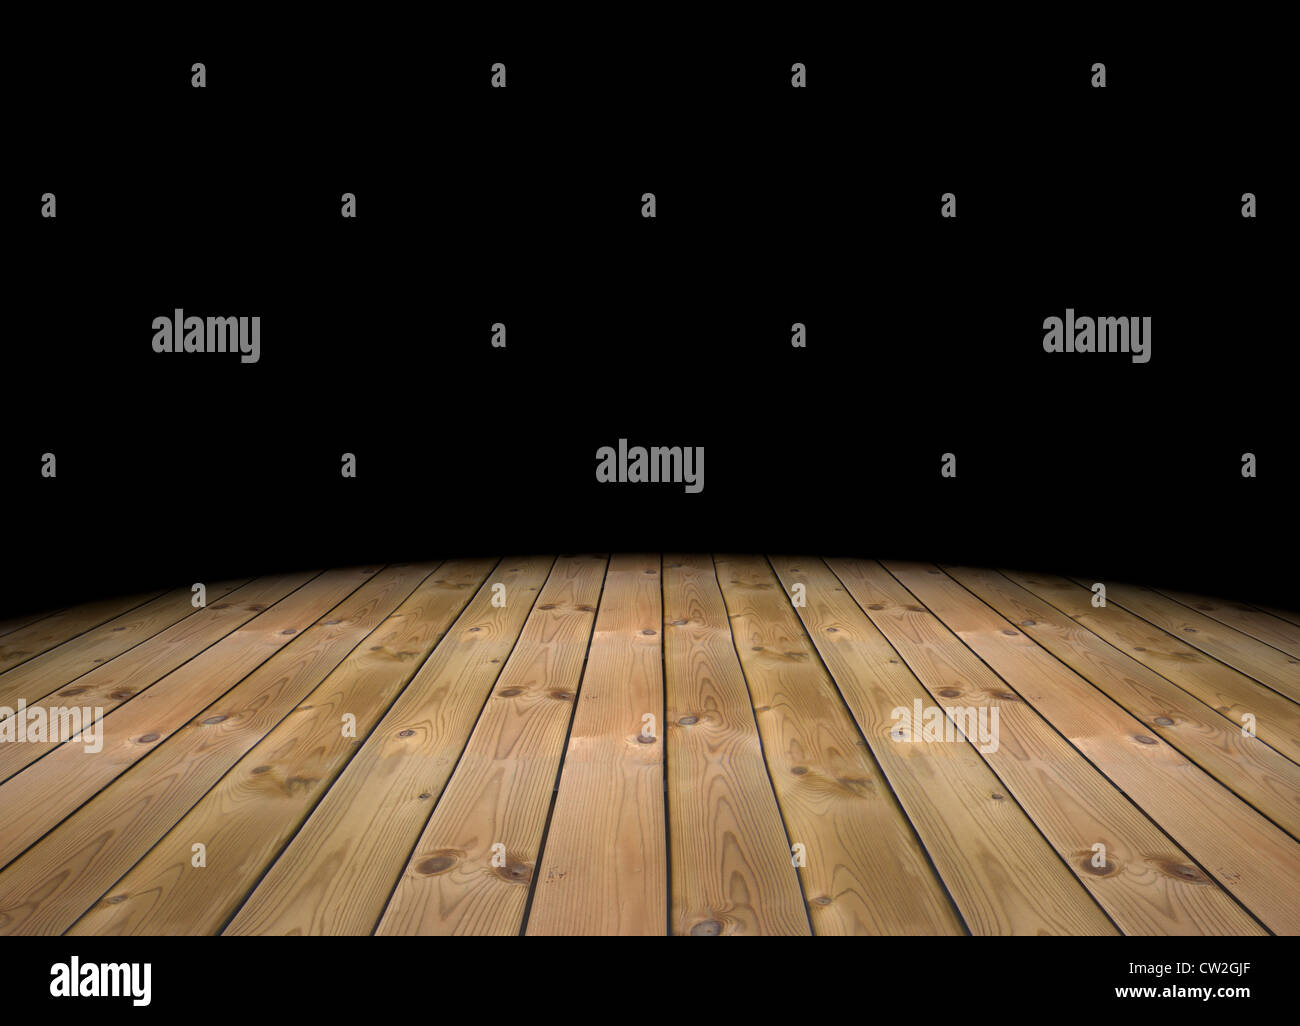 3d Empty Abstract Dark Room With A Wood Floor Stock Photo